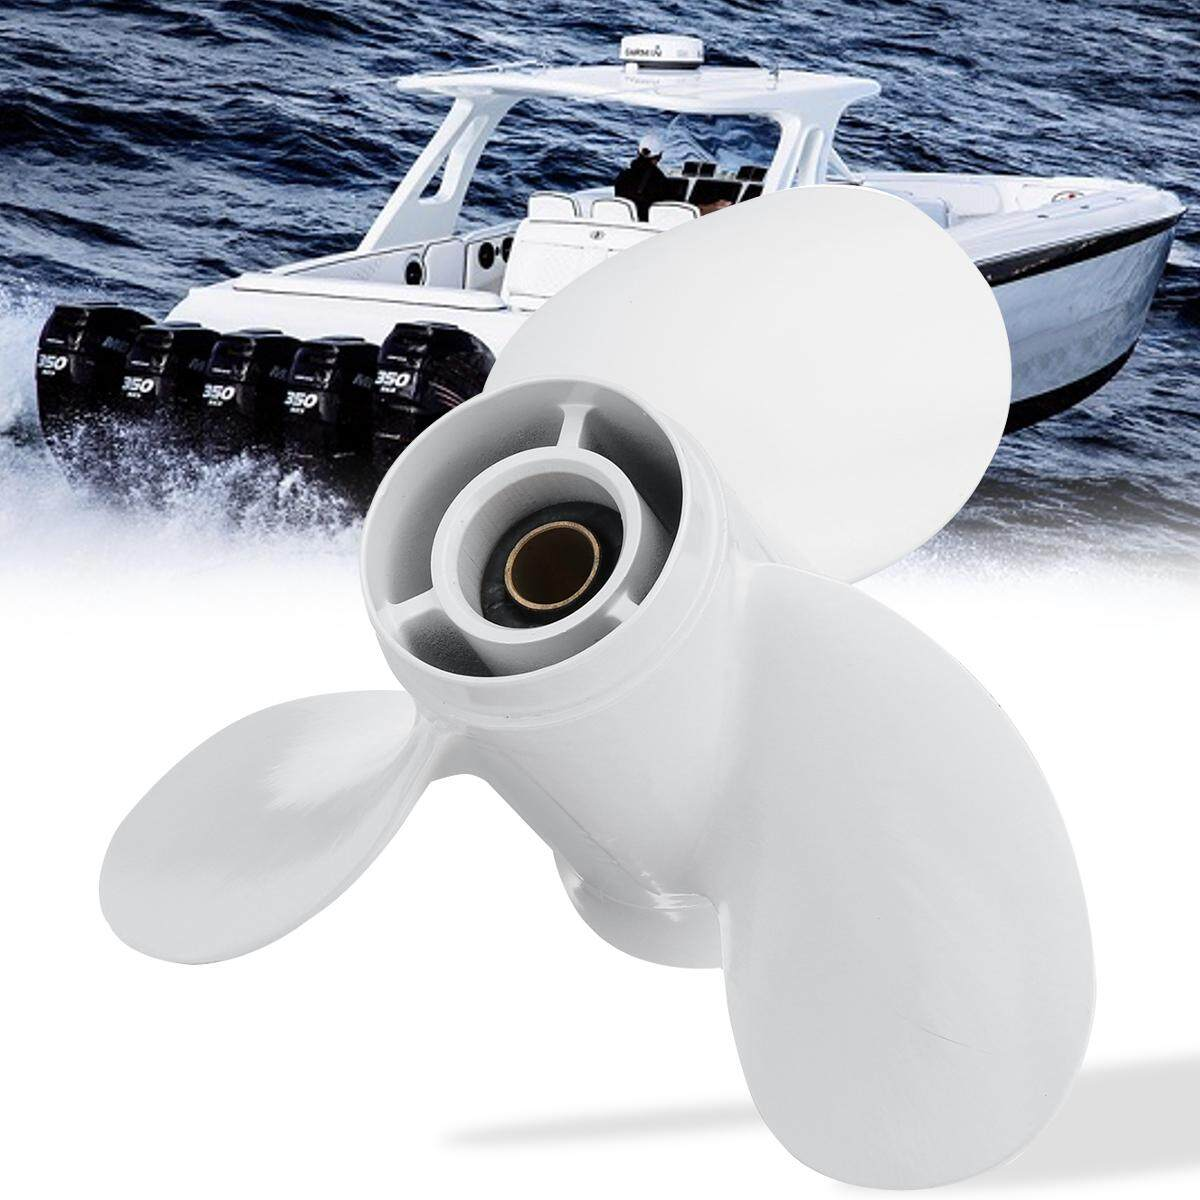 Boating Accessories for sale - Boating Equipment online